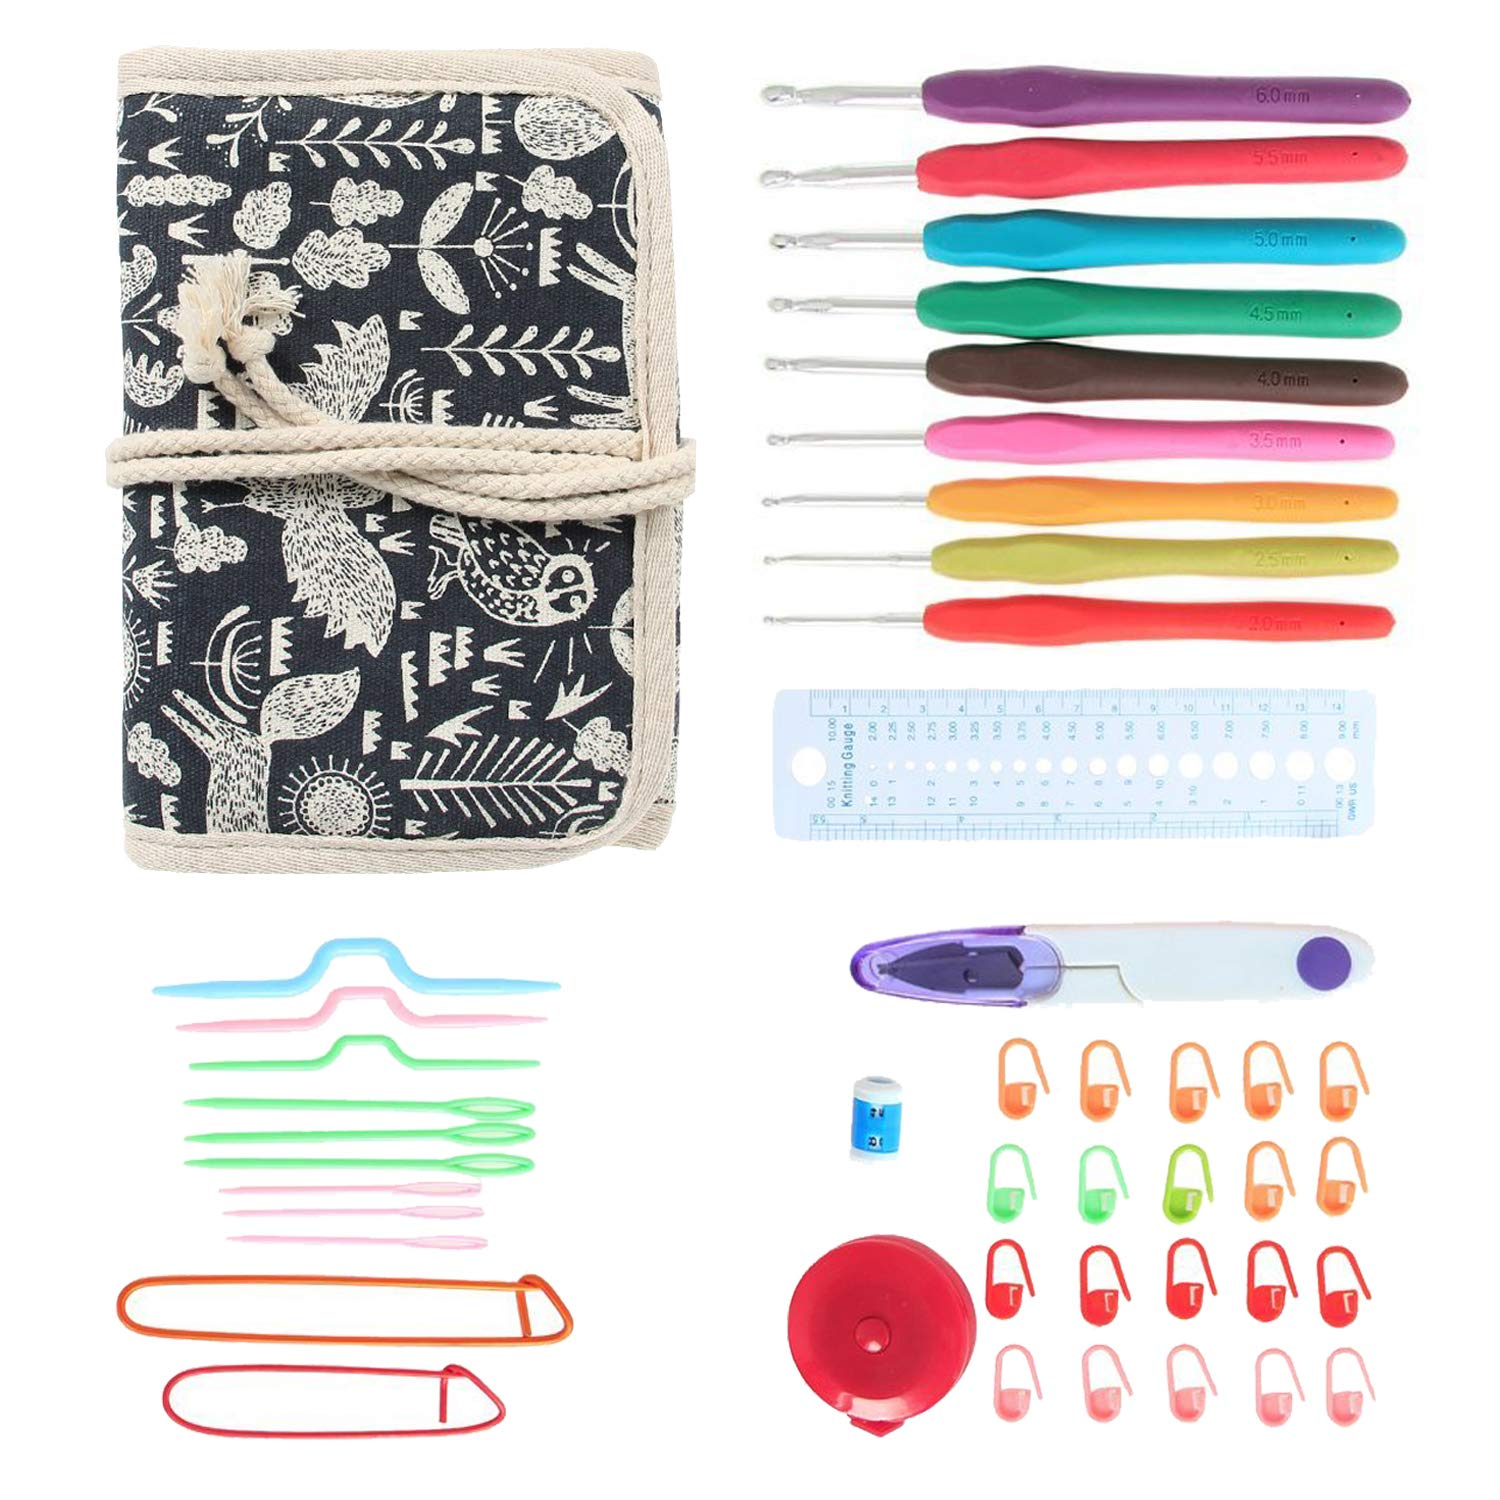 Damero Ergonomic Crochet Hooks Set, Travel Canvas Roll Organizer with 9pcs 2mm to 6mm Soft Grip Crochet Hooks and Complete Knitting Accessories, All in One, Easy to Carry, Bohemian Damai